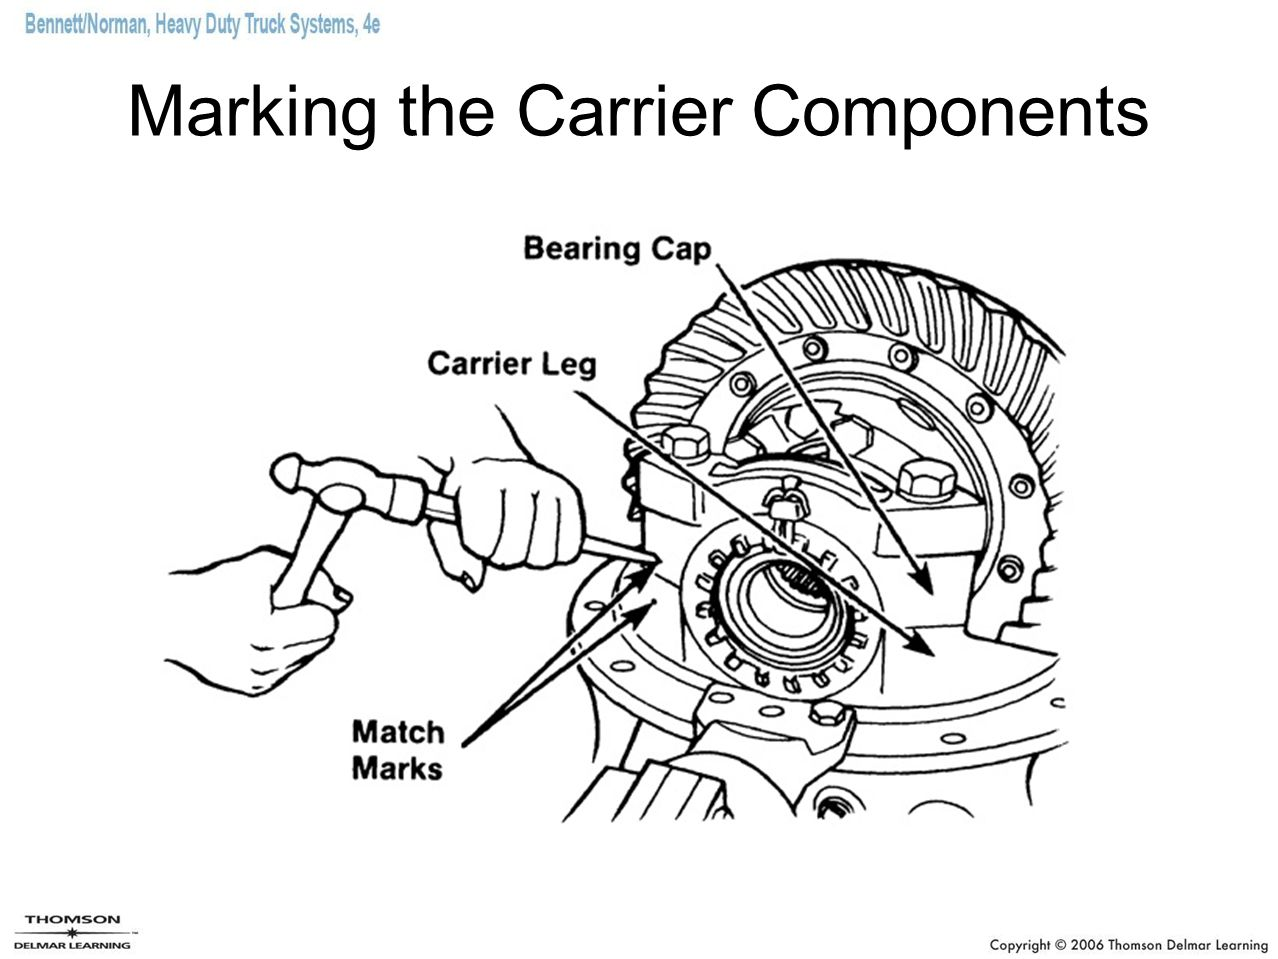 Marking the Carrier Components